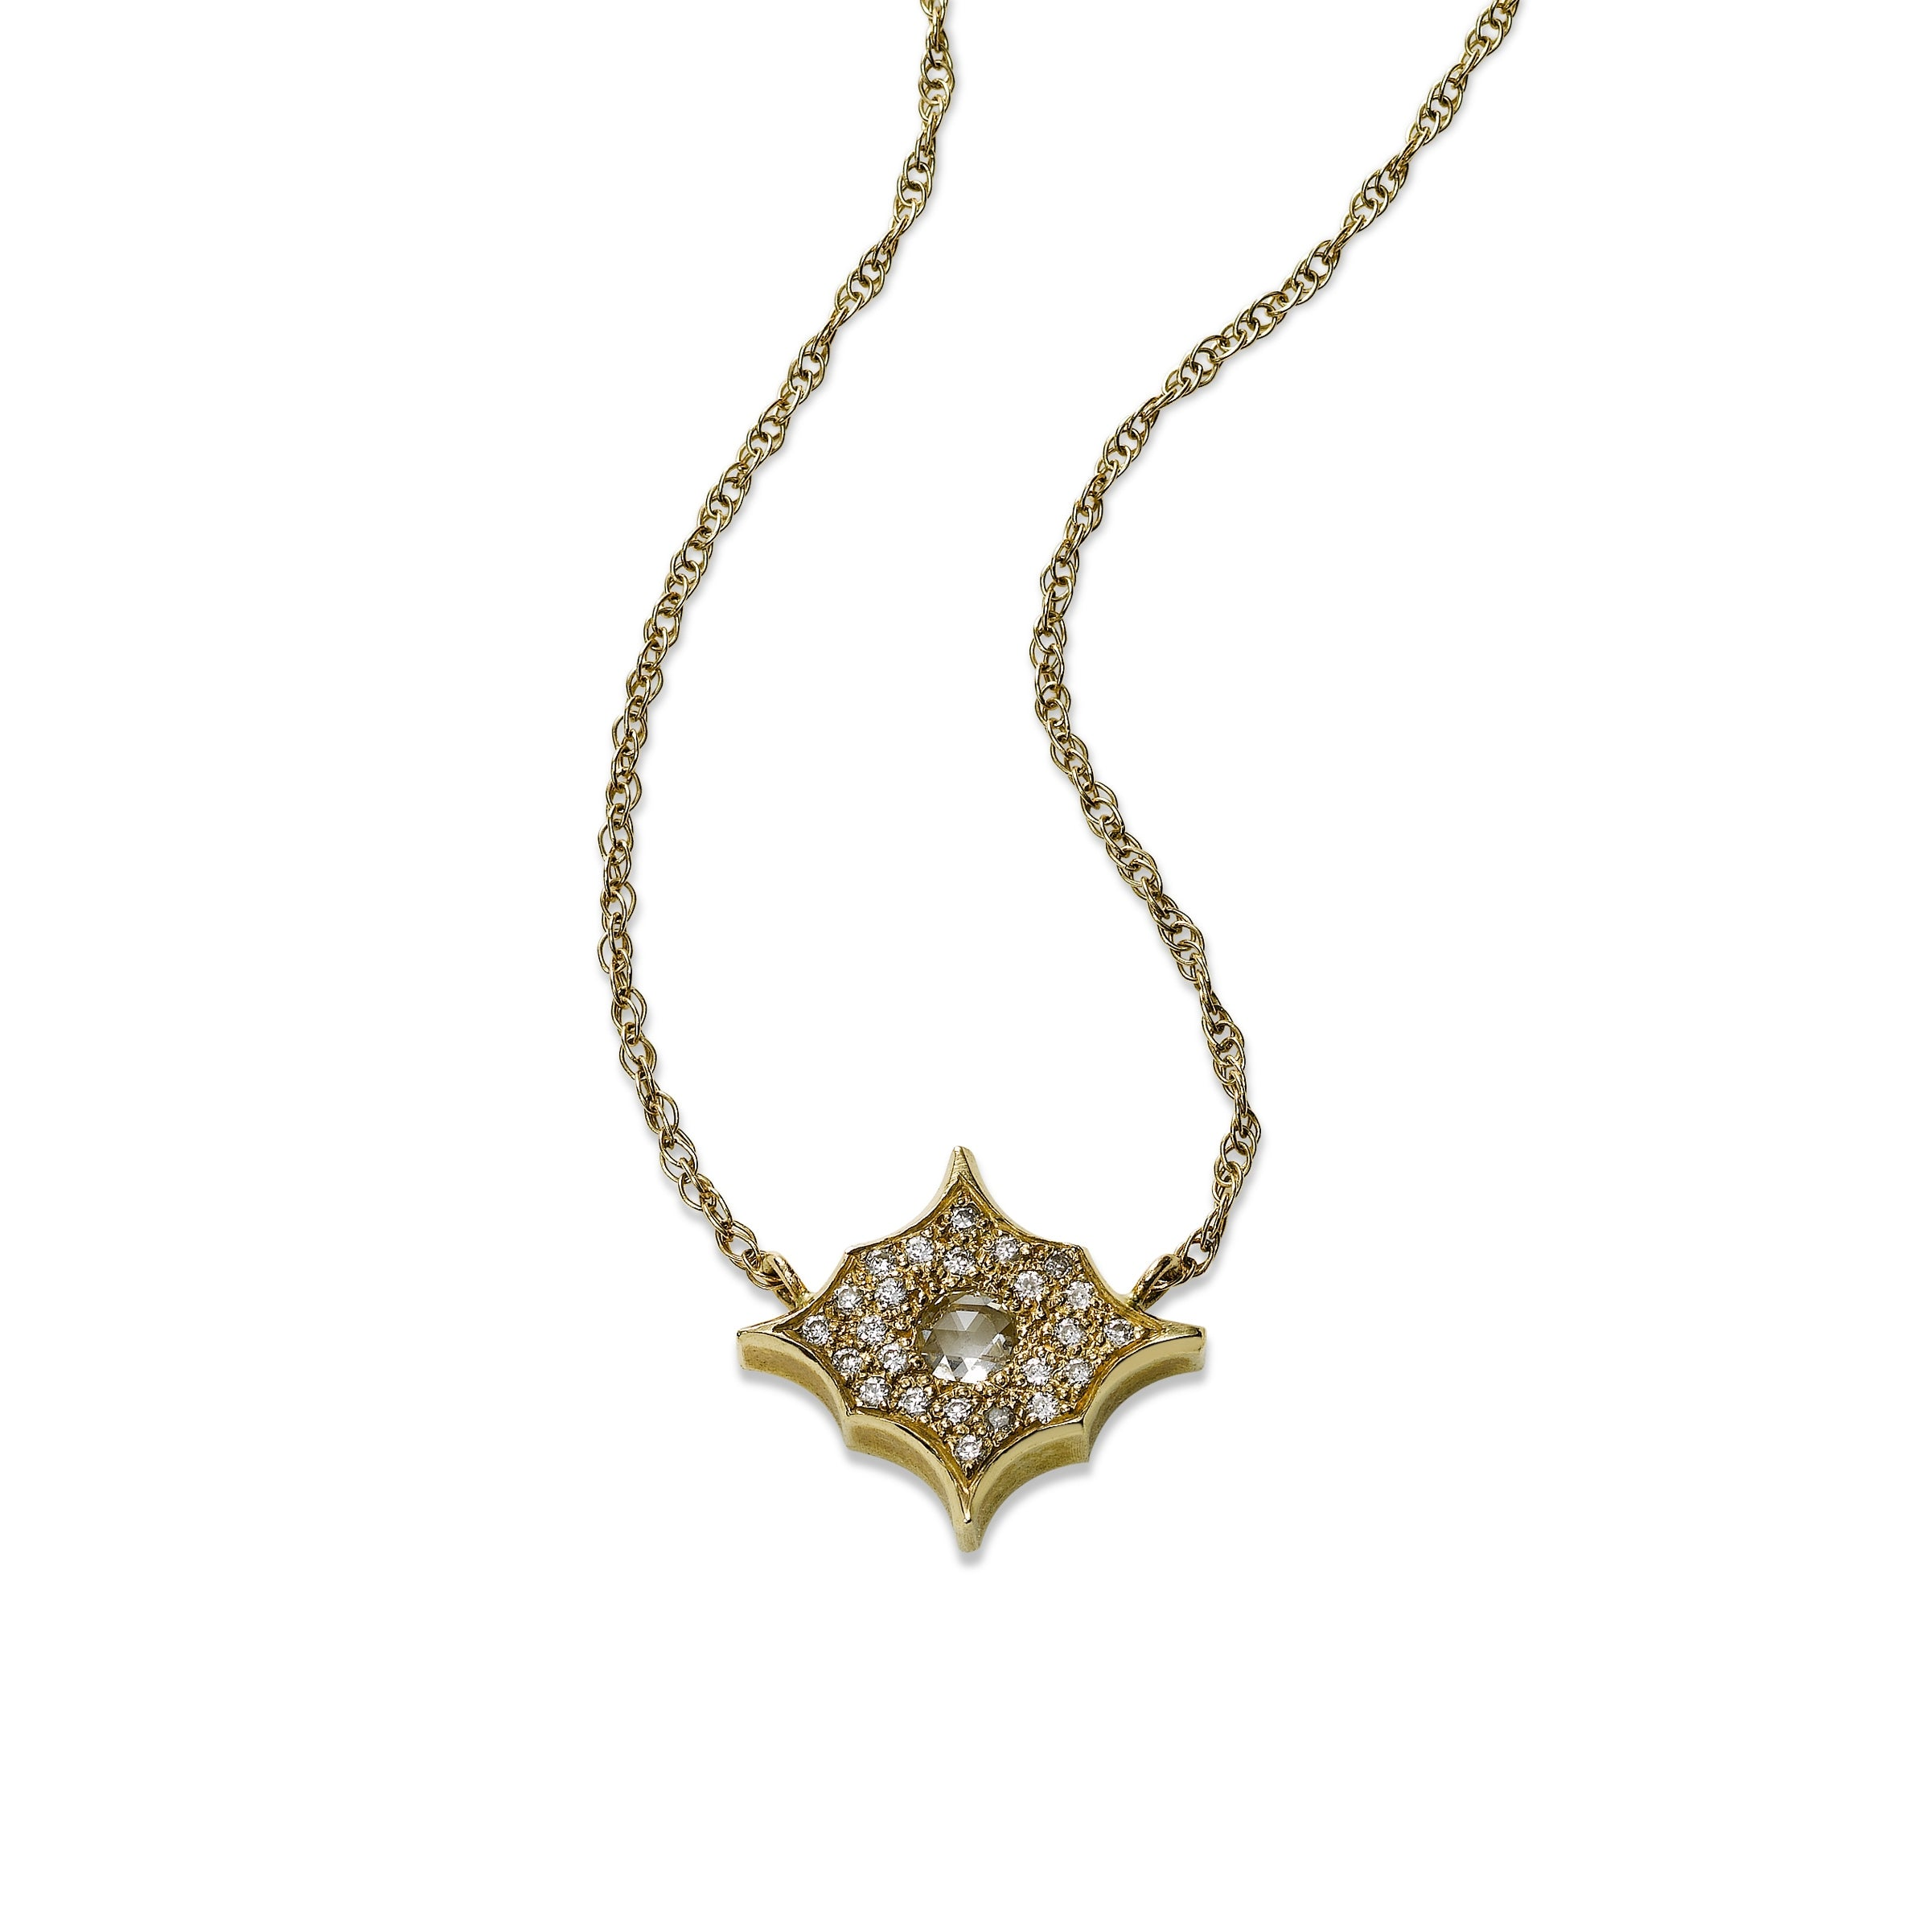 Celestial Design Diamond Necklace, by Just Jules, 14K Yellow Gold